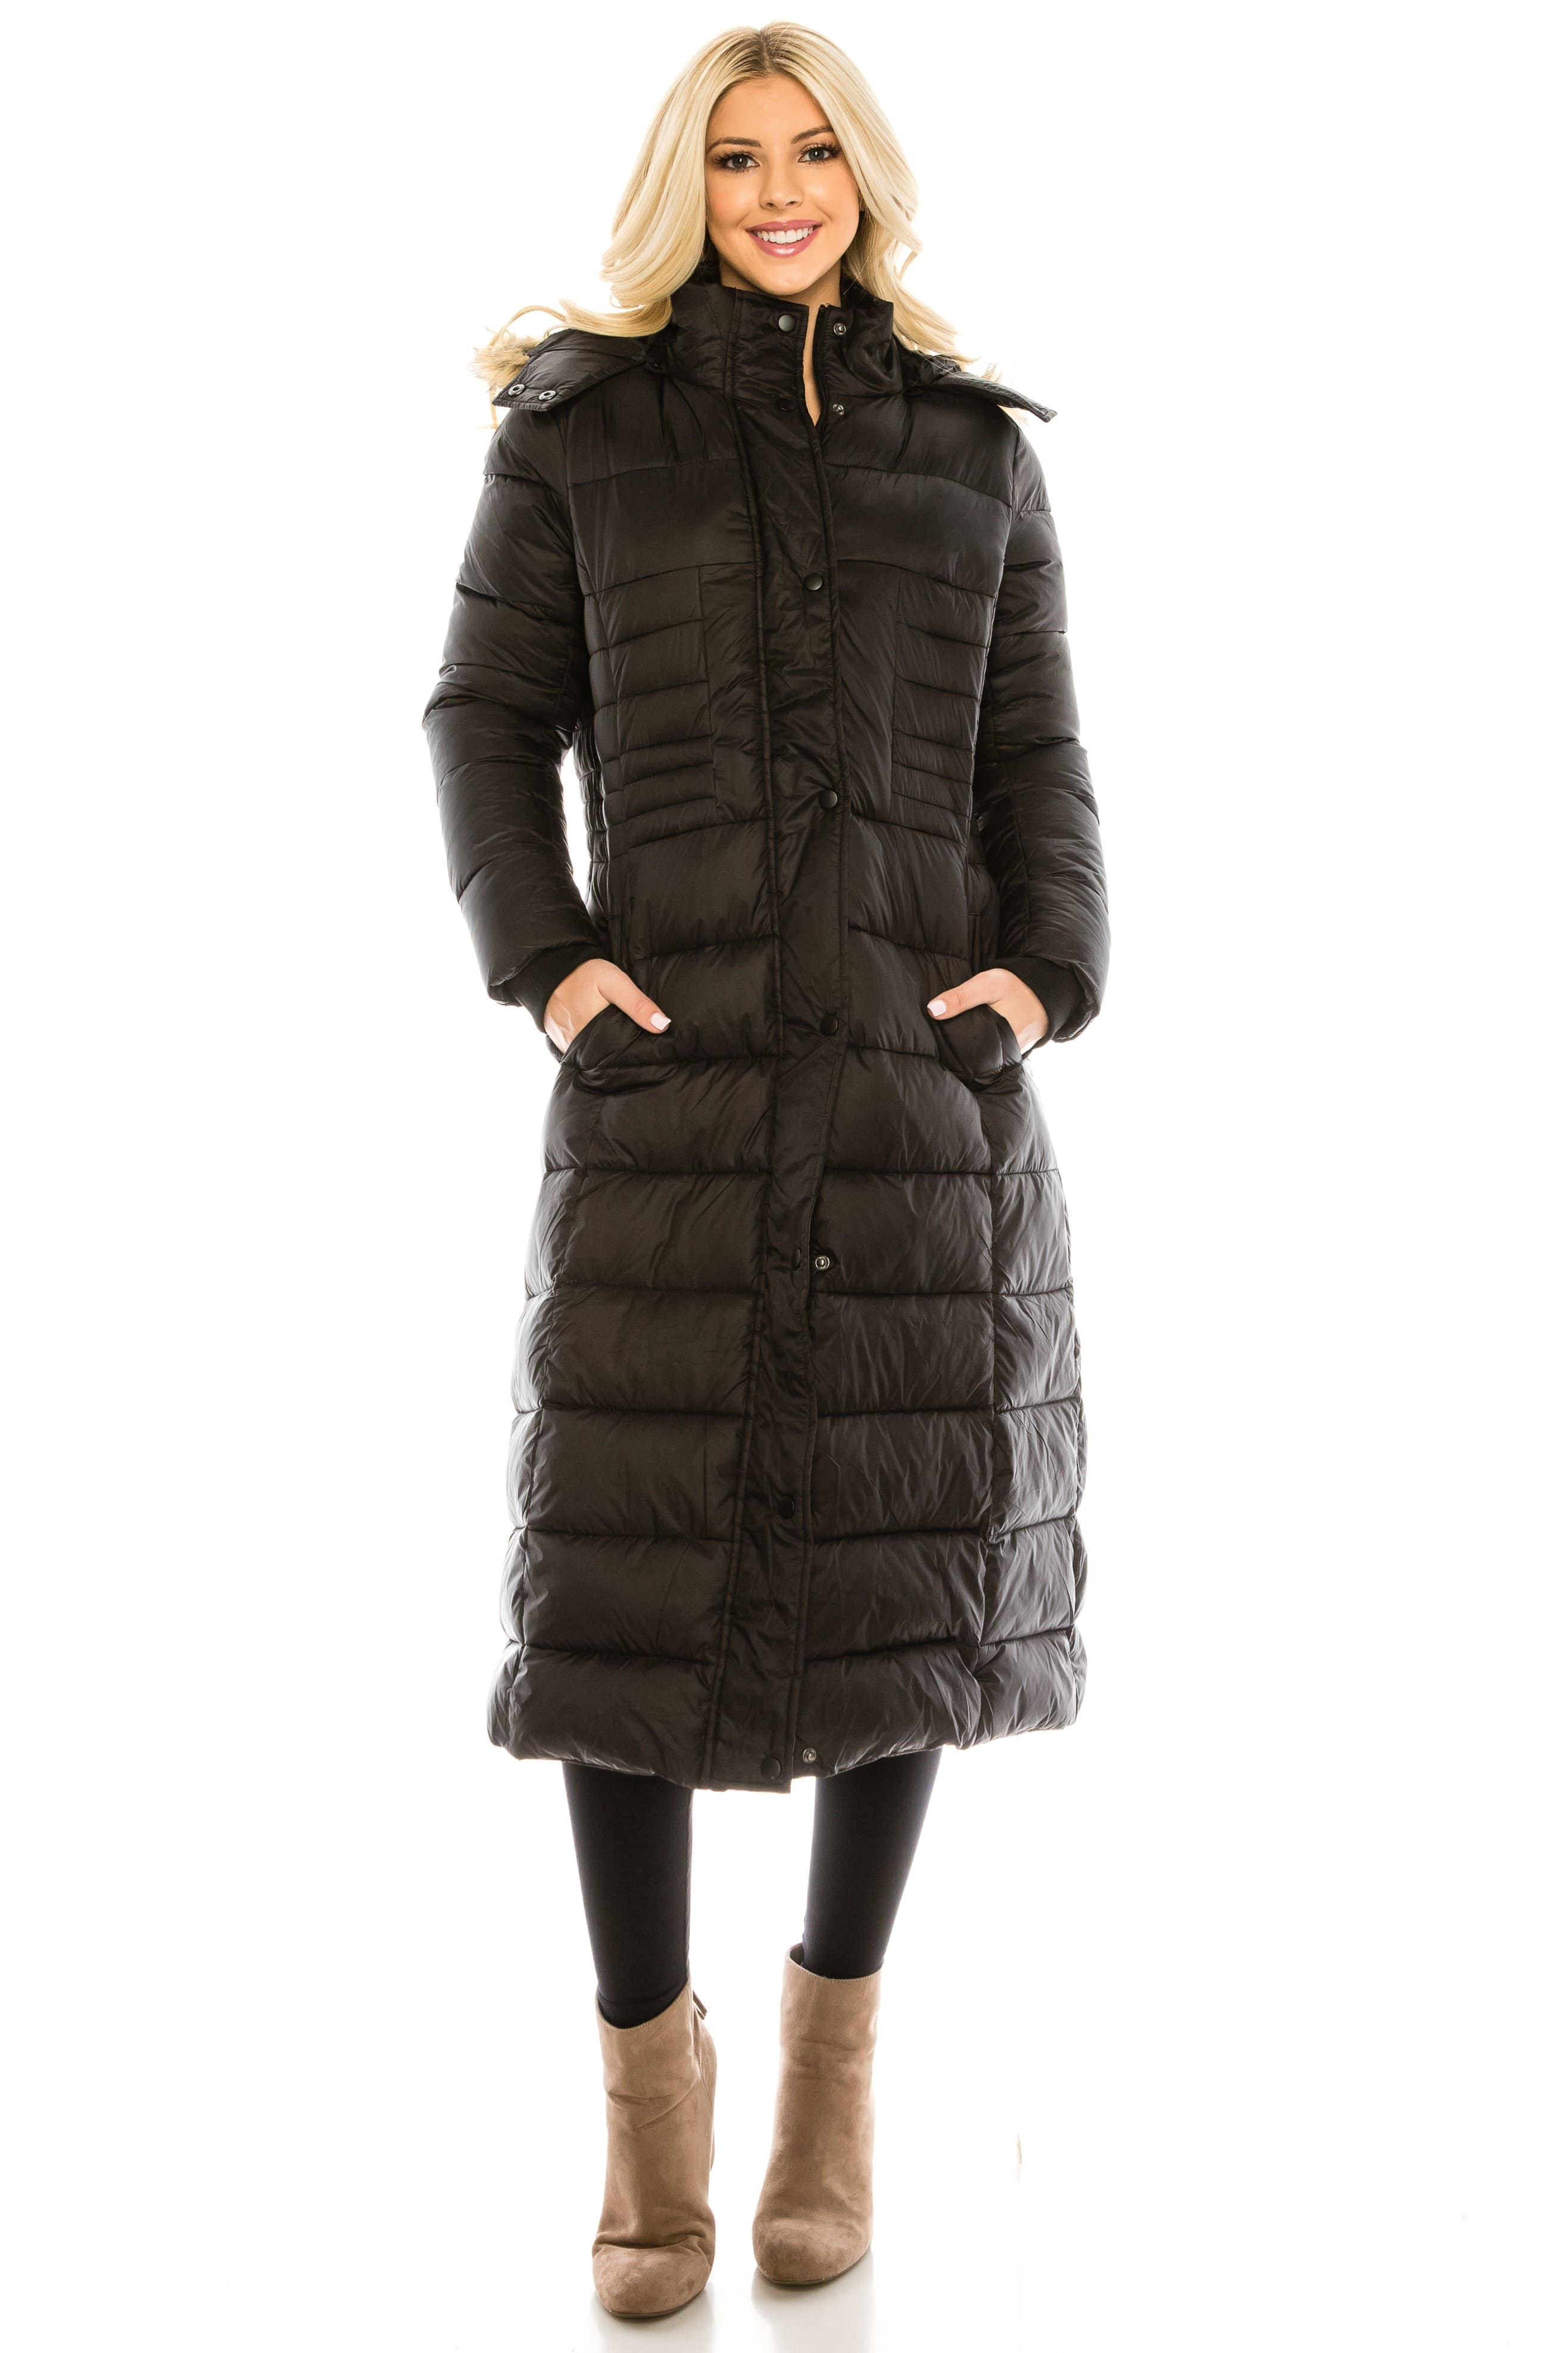 DAILYHAUTE Women's coats BLACK / S Haute Edition Women's Maxi Length Quilted Puffer with Fur Lined Hood